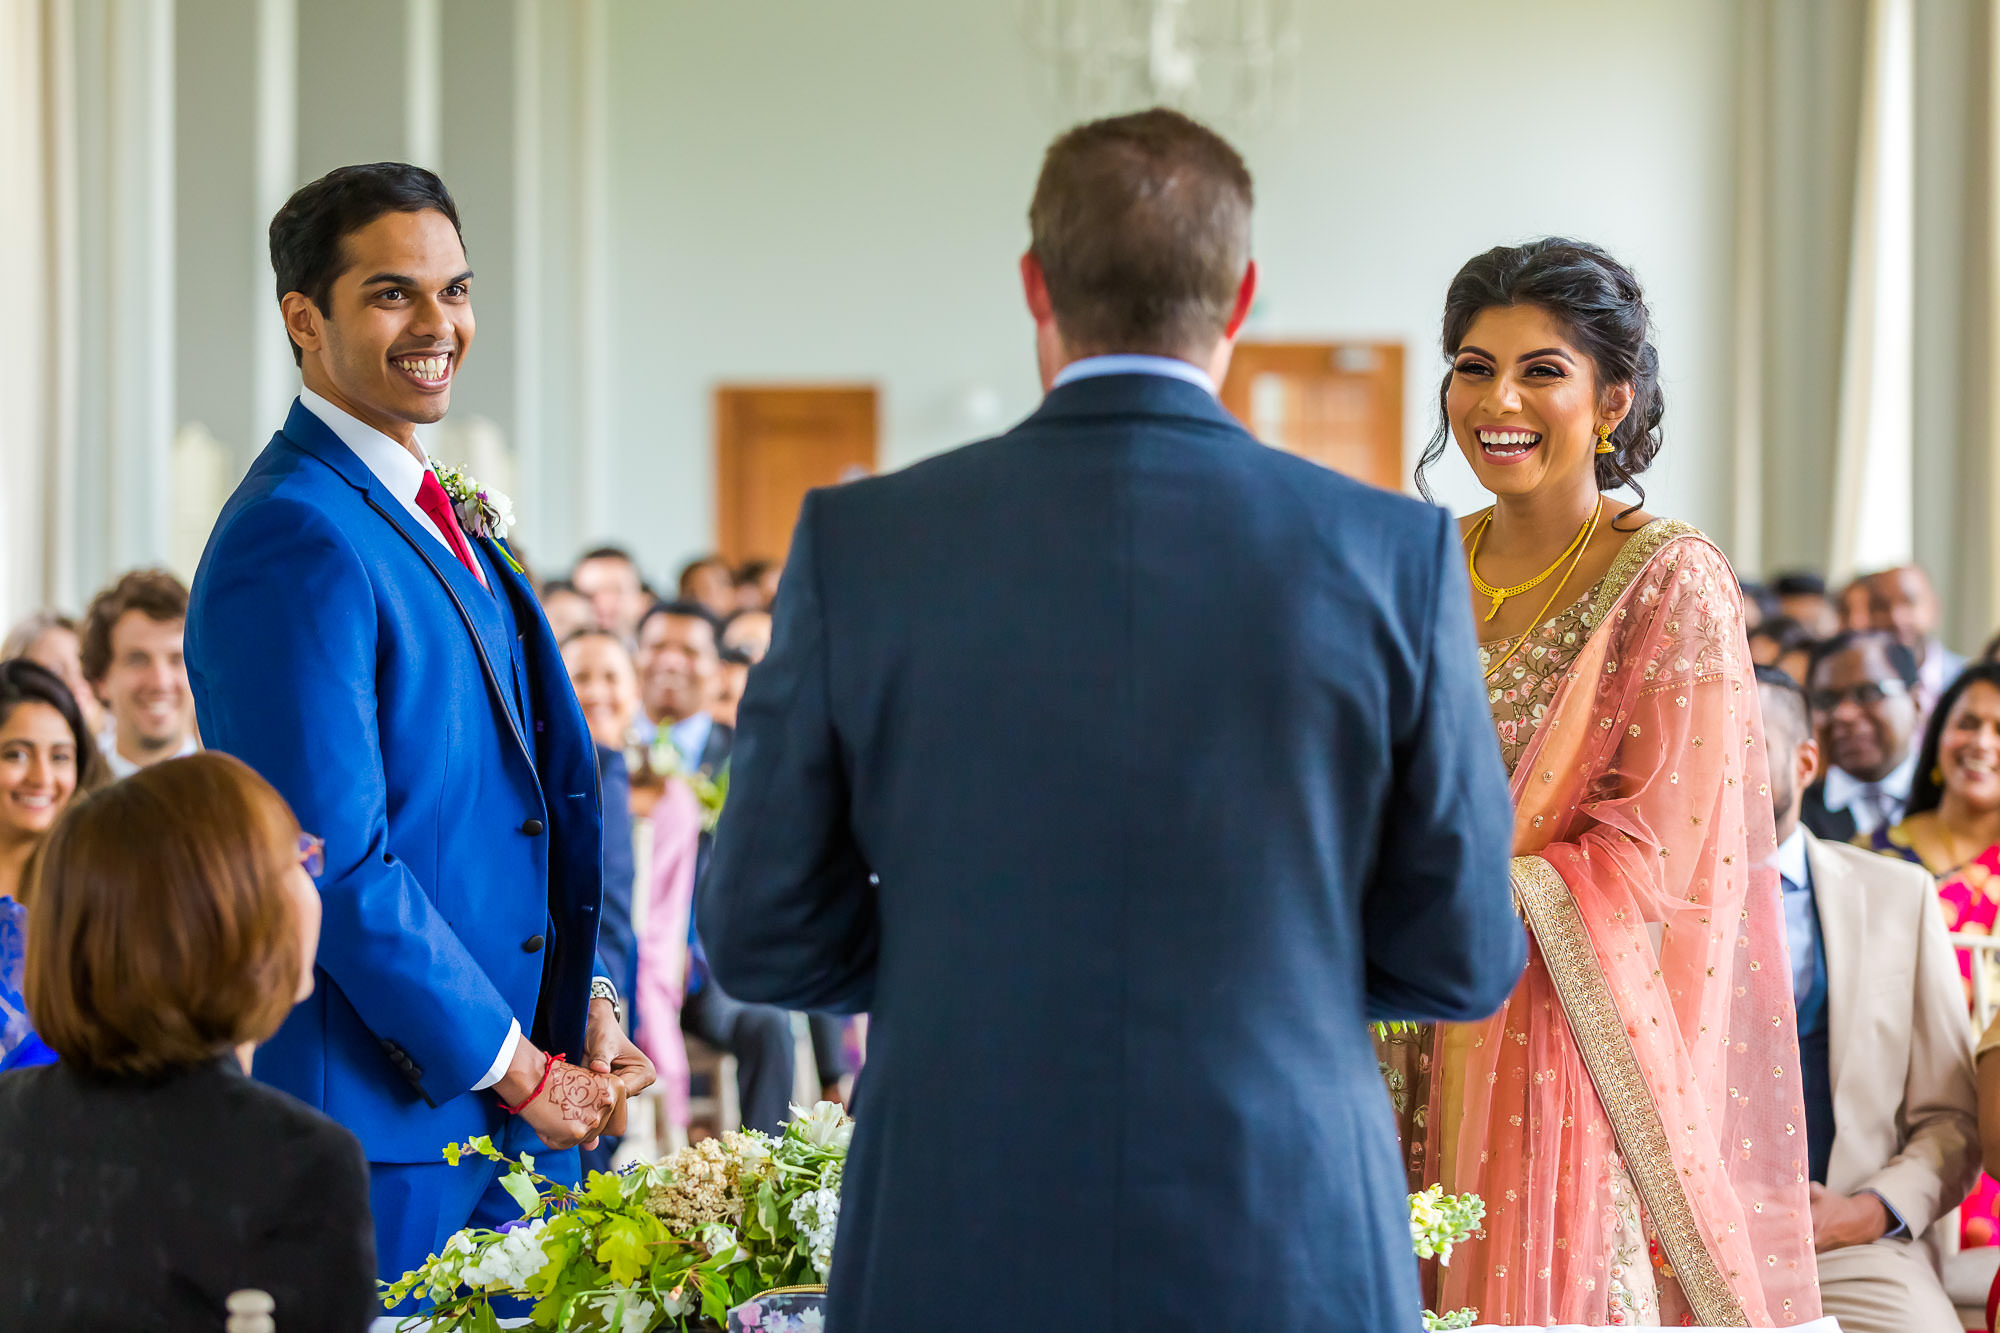 asian-wedding-hindu-tamil-photographer-heythorpe-oxford-0218.jpg